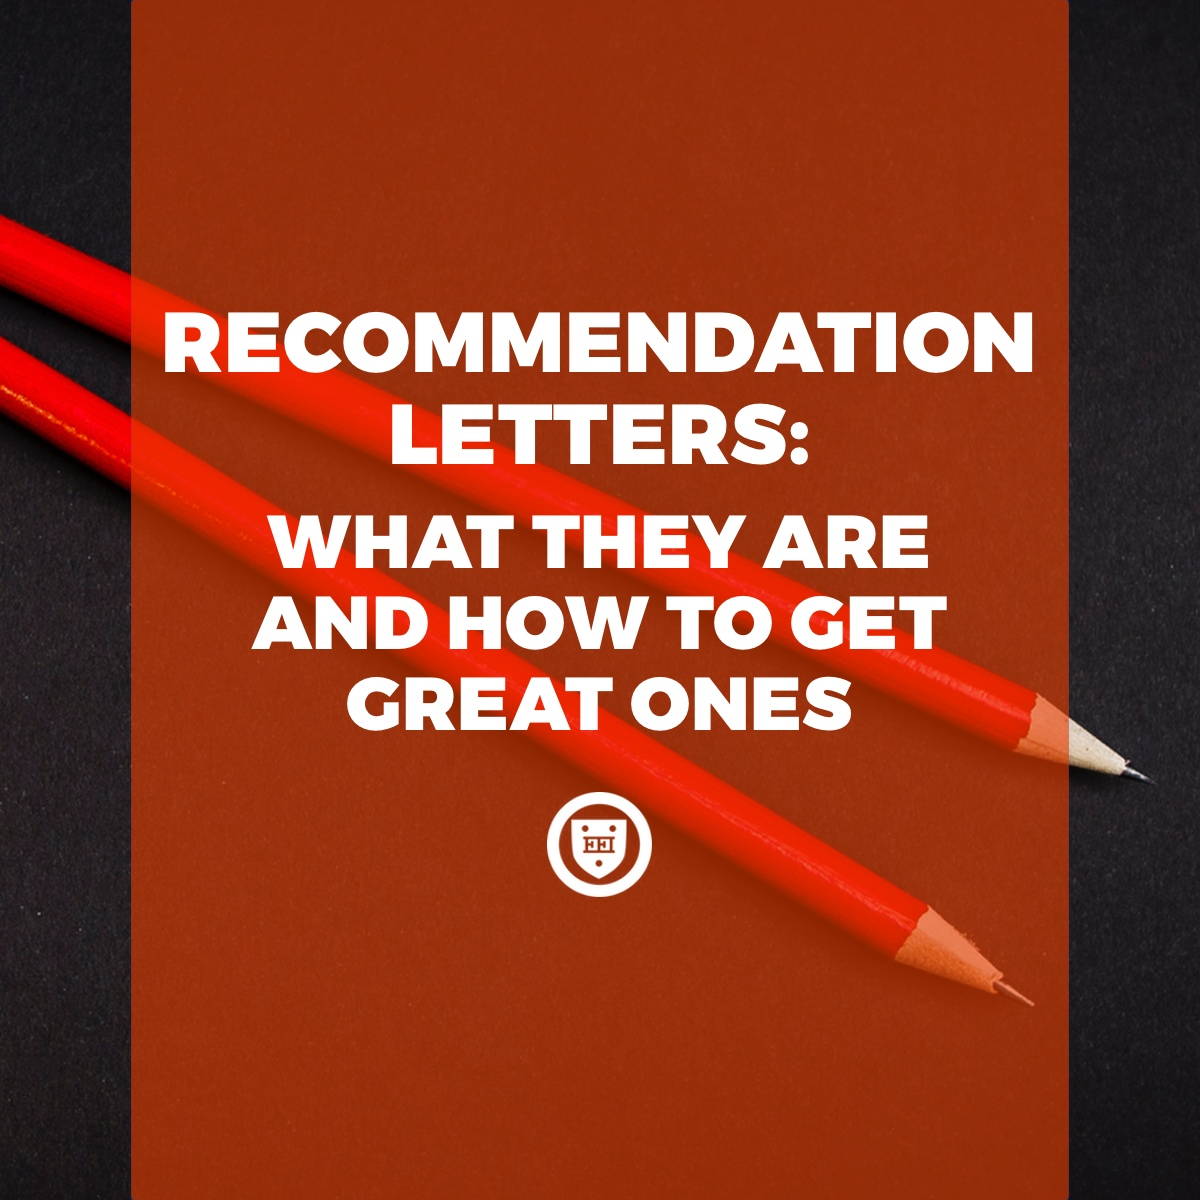 Recommendation Letters: What They Are and How to Get Great Ones